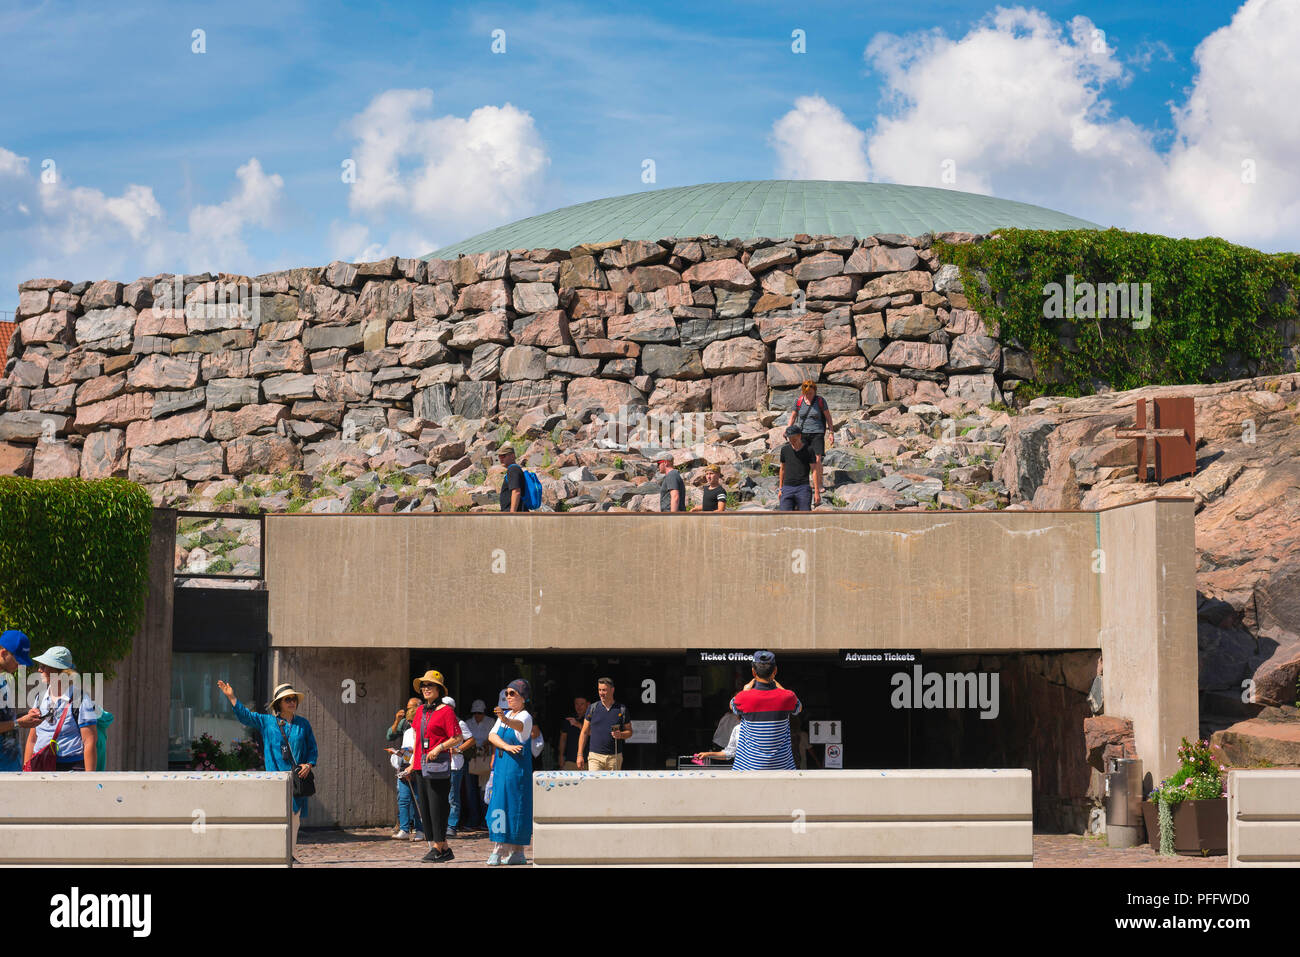 Helsinki architecture Finland, view of the entrance to the Temppeliaukio Kirkko, a church built into solid rock in the centre of Helsinki, Finland. - Stock Image